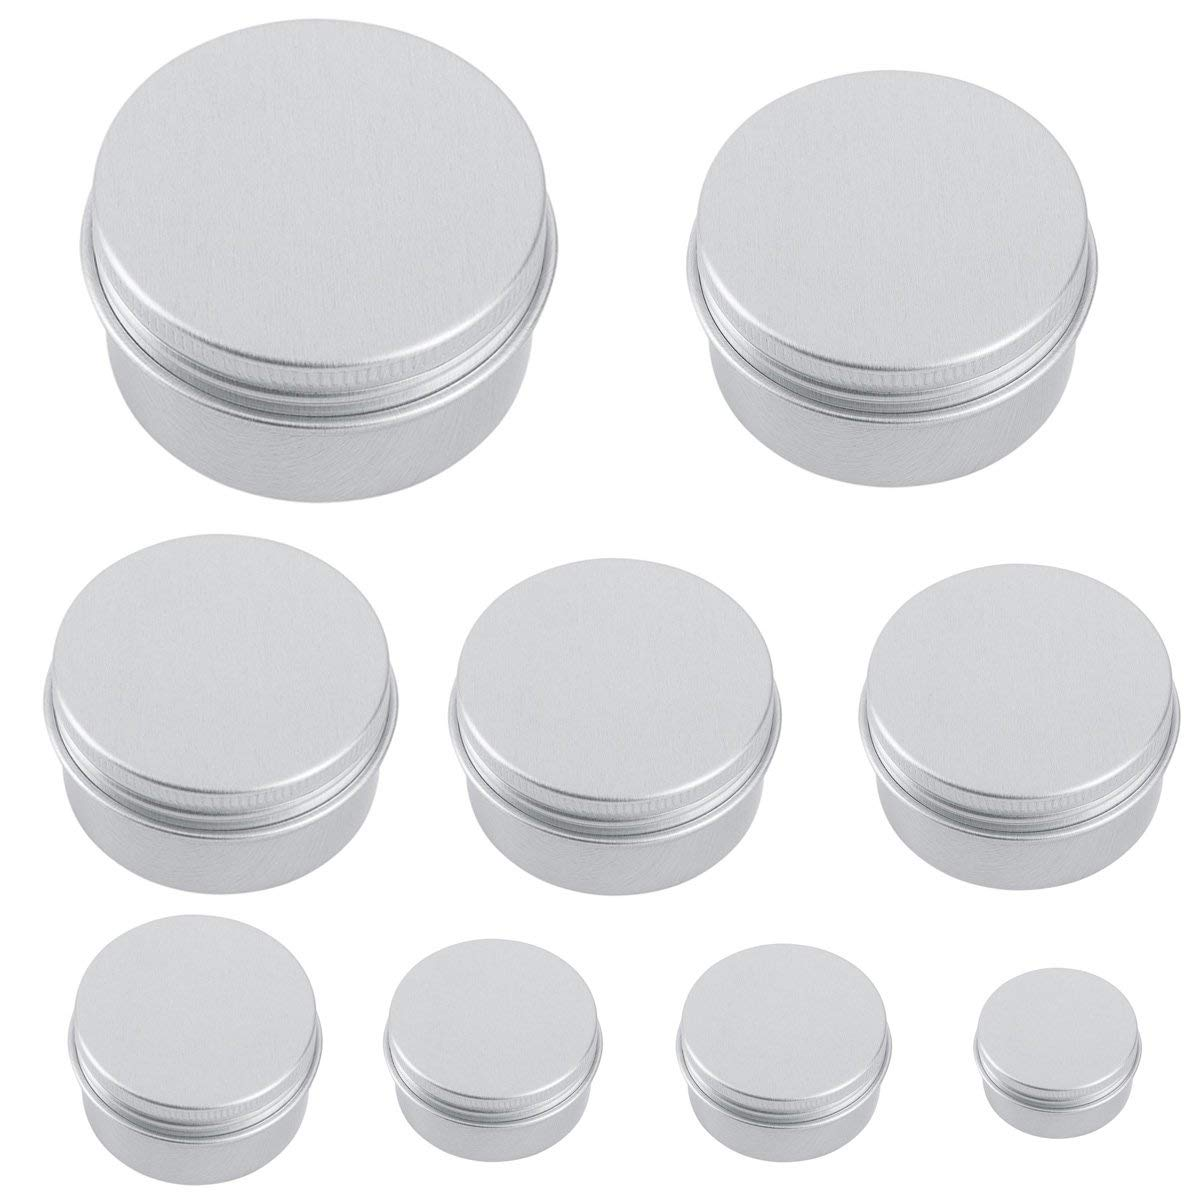 9pcs Aluminum Round Lip Balm Tin Container Bottle With Thread Lid For Cosmetic Crafts Sample Pots Herbs Nail Art Lotions Salves 8g